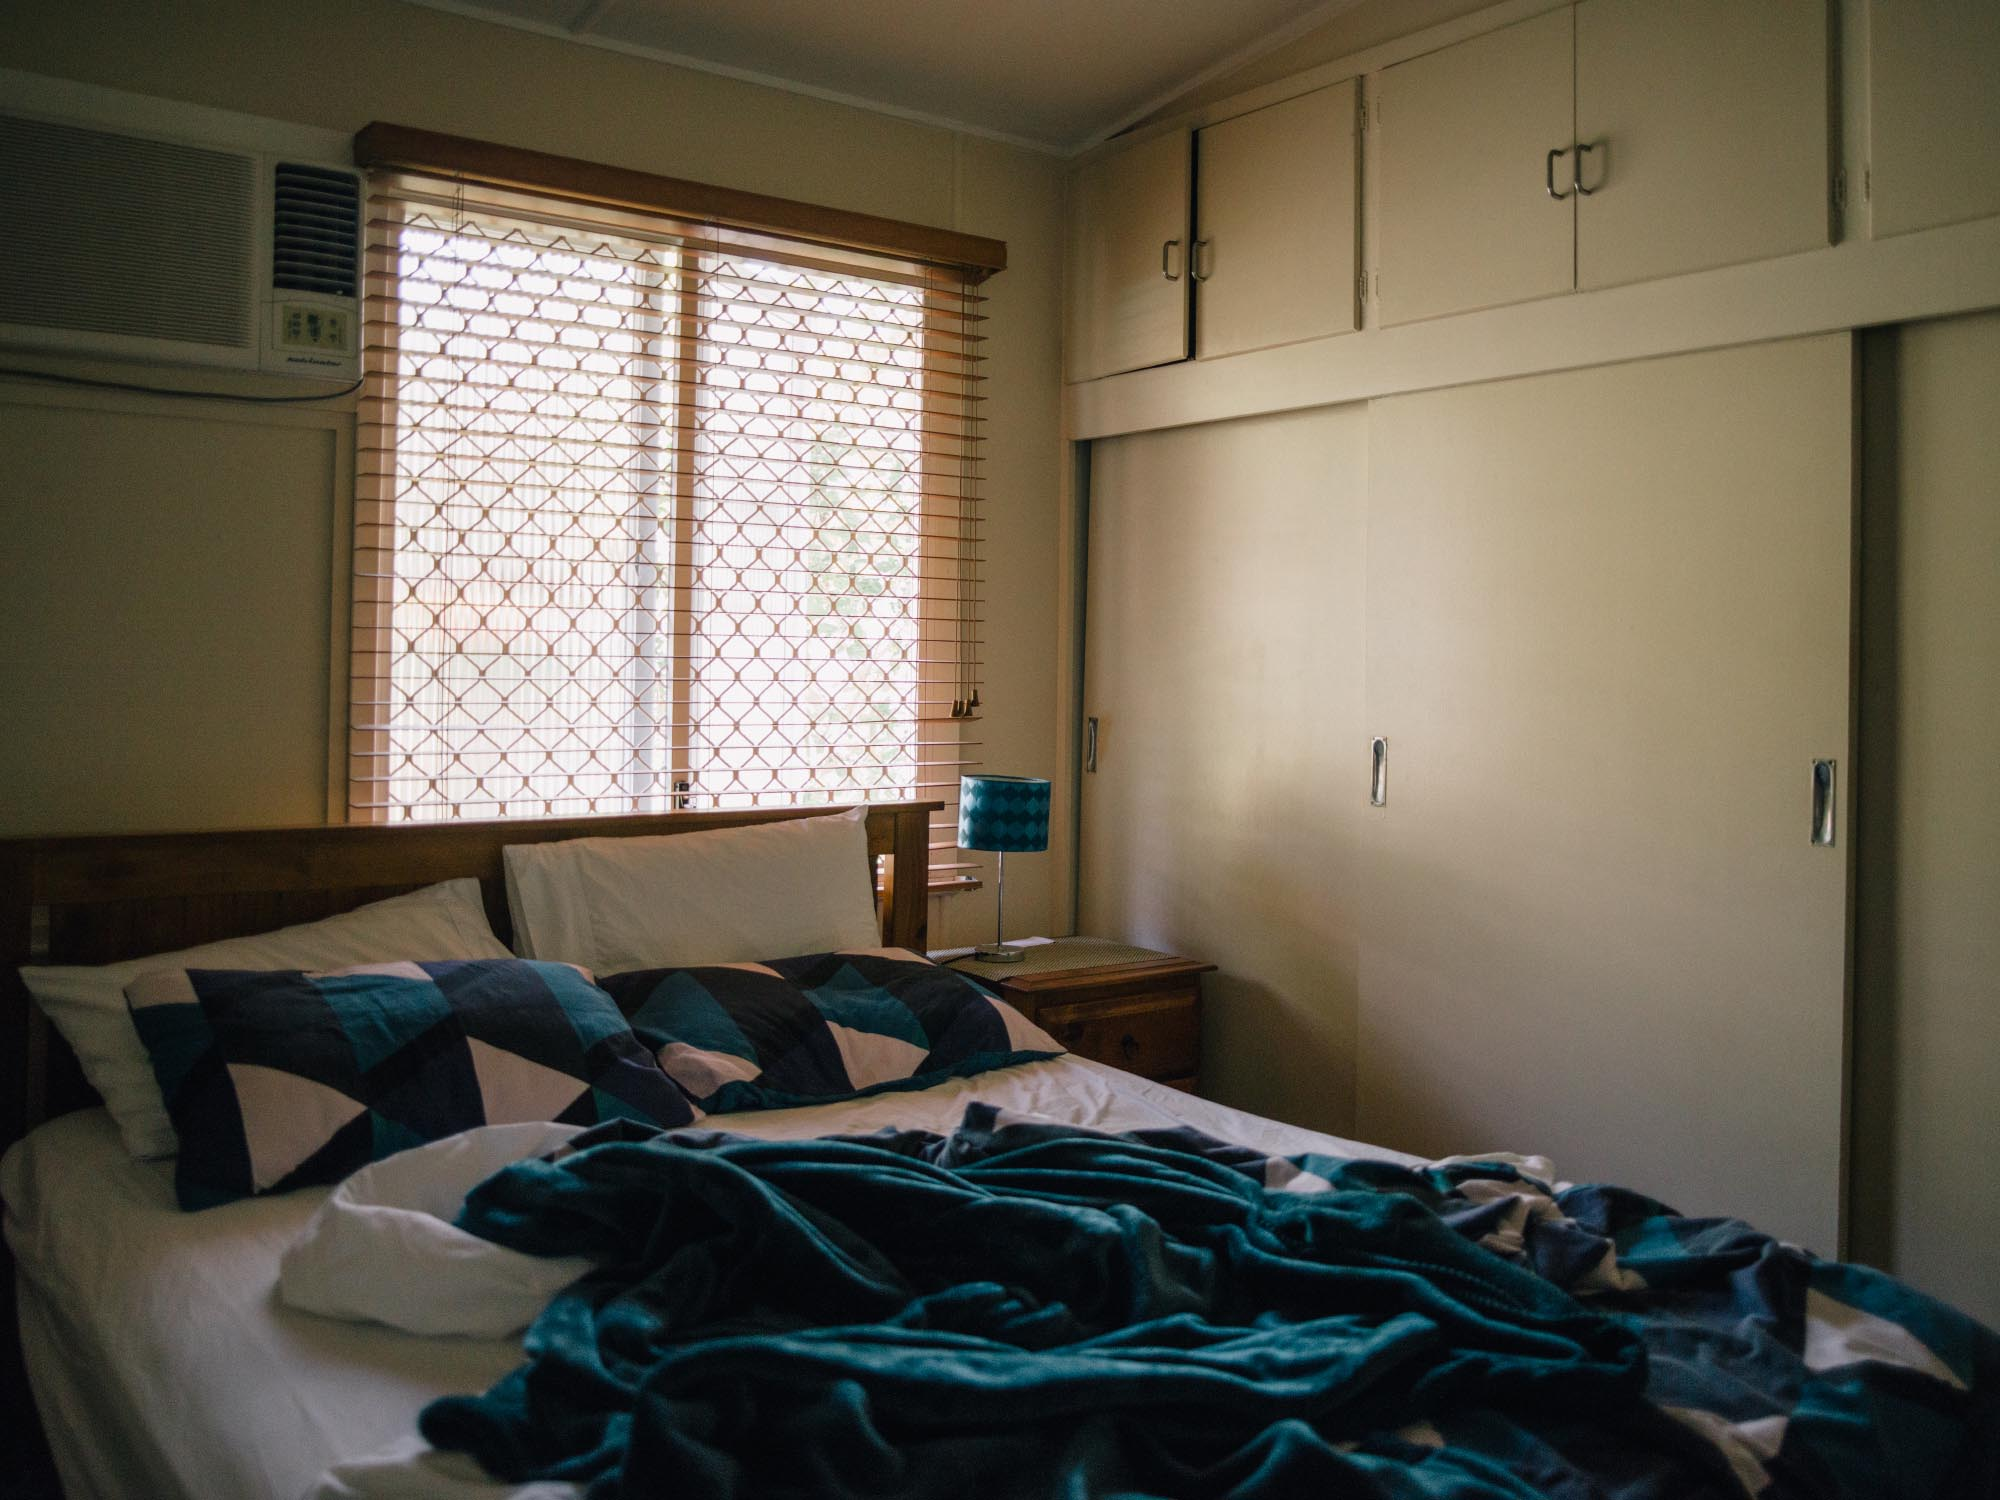 Our favorite airBnb room in Australia. Rob's place!